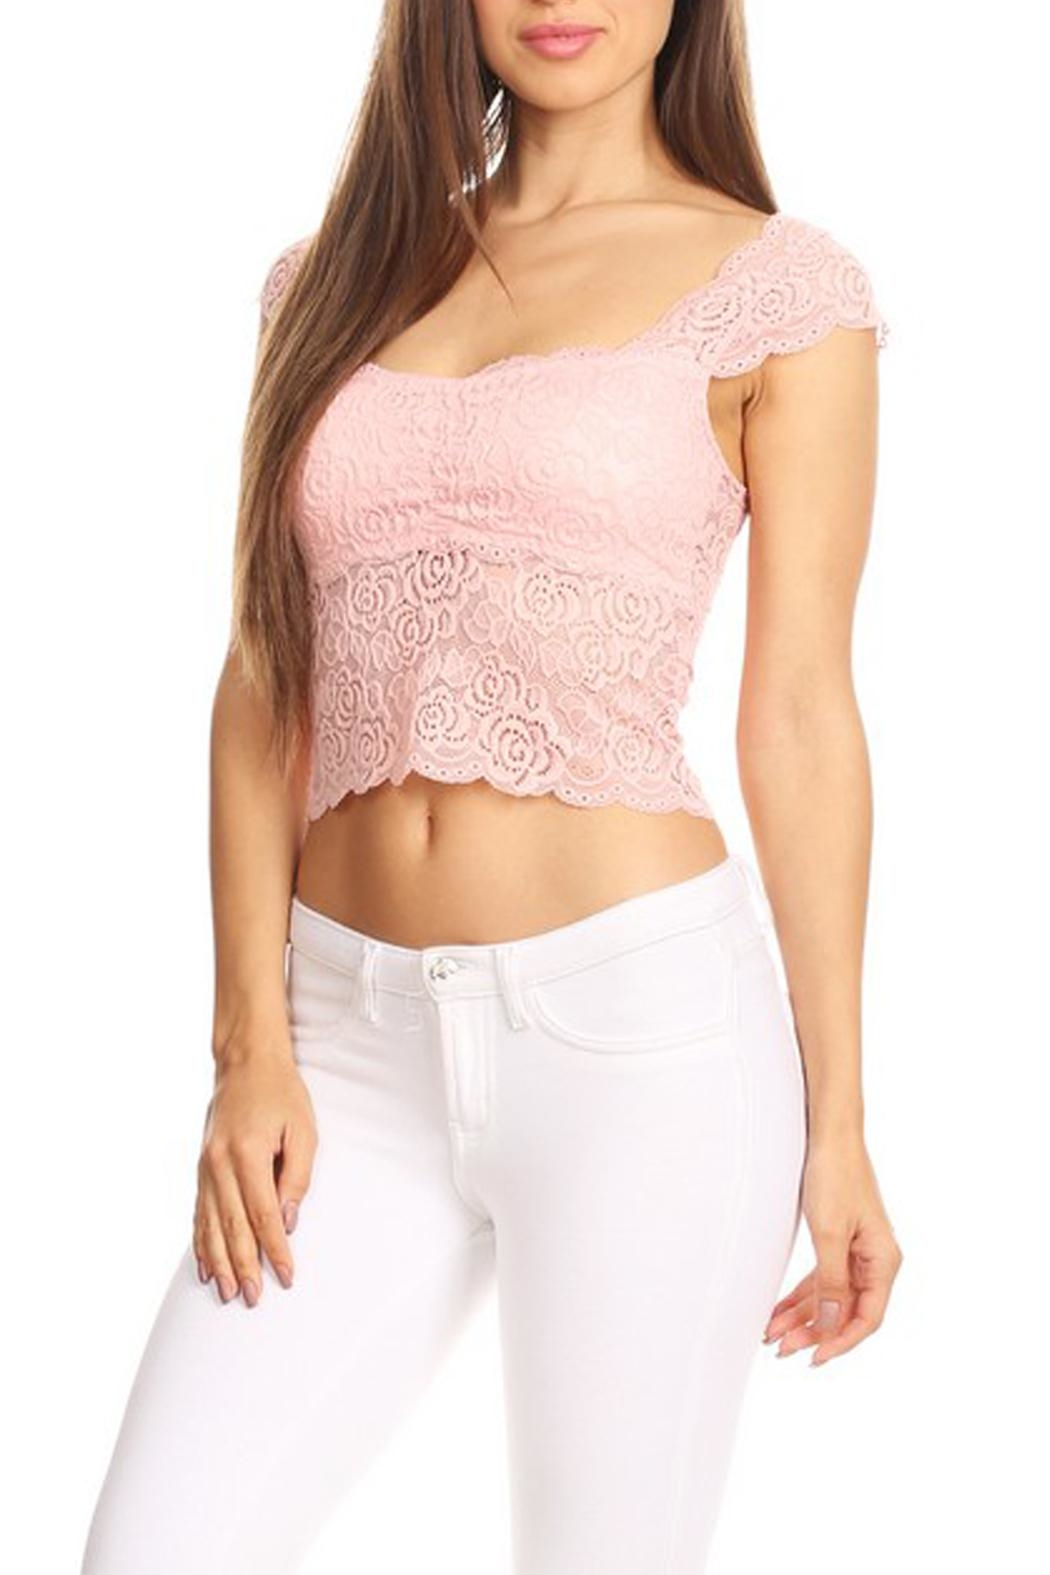 JChronicles Lace Crop Top - Front Full Image